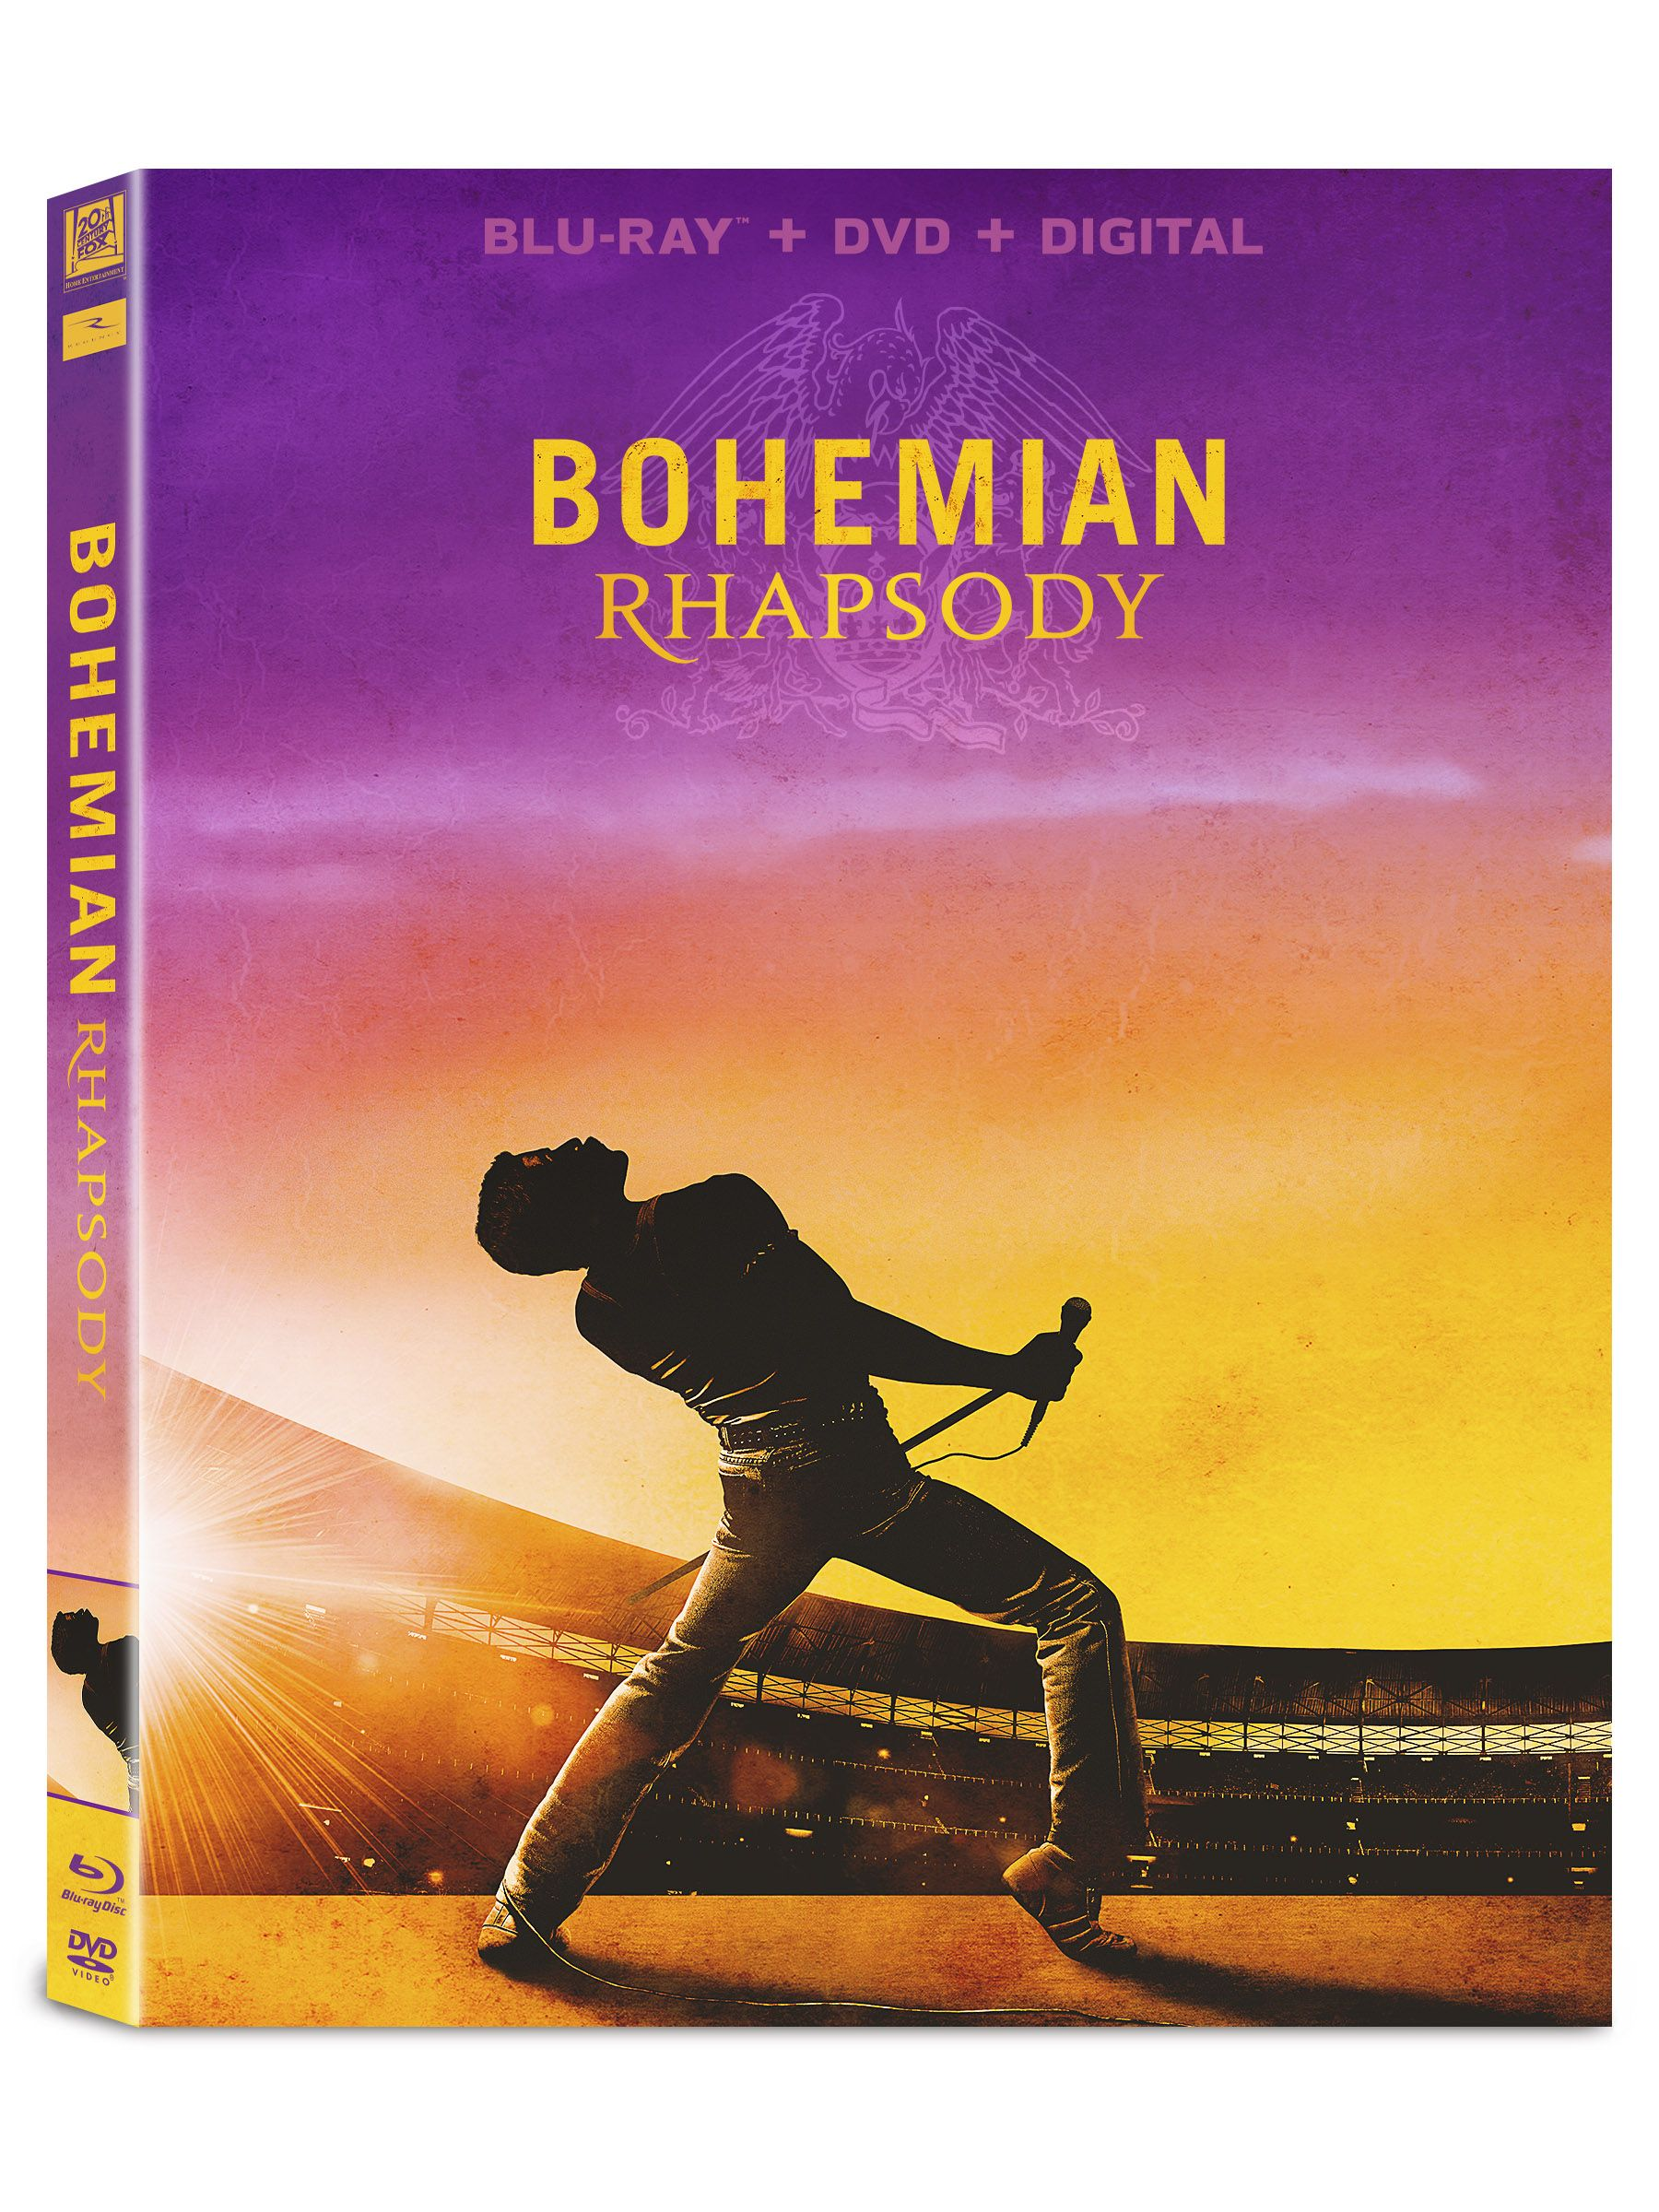 On Bluray Dvd And Digital From Director Brian Singer And 20th Century Fox Home Entertainment Comes The Story Of A Legend That Liv Bohemian Rhapsody Dvd Blu Ray